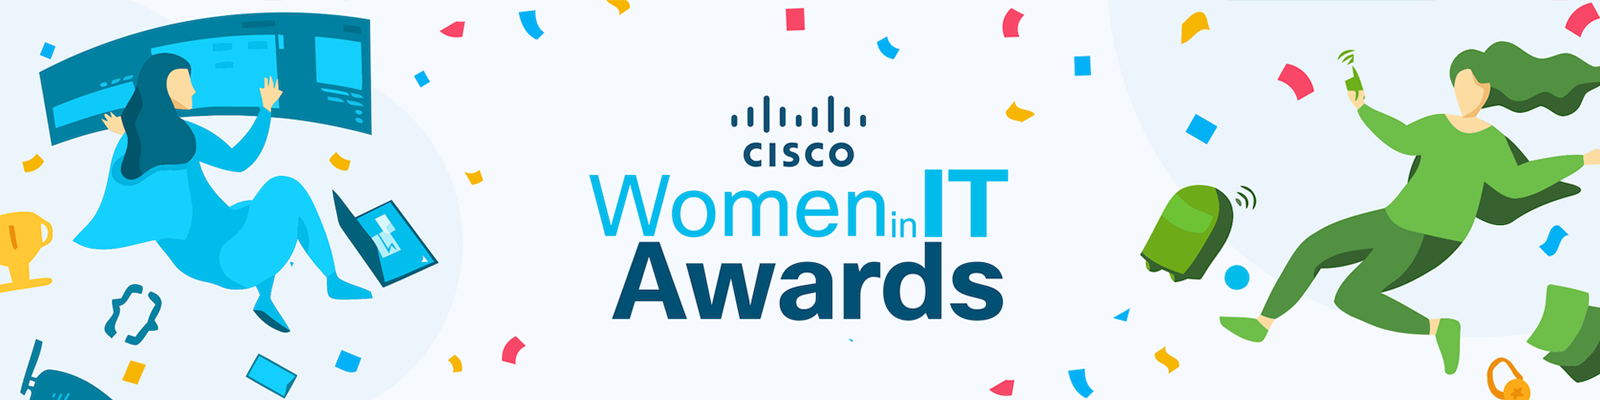 cisco-it-women-banner